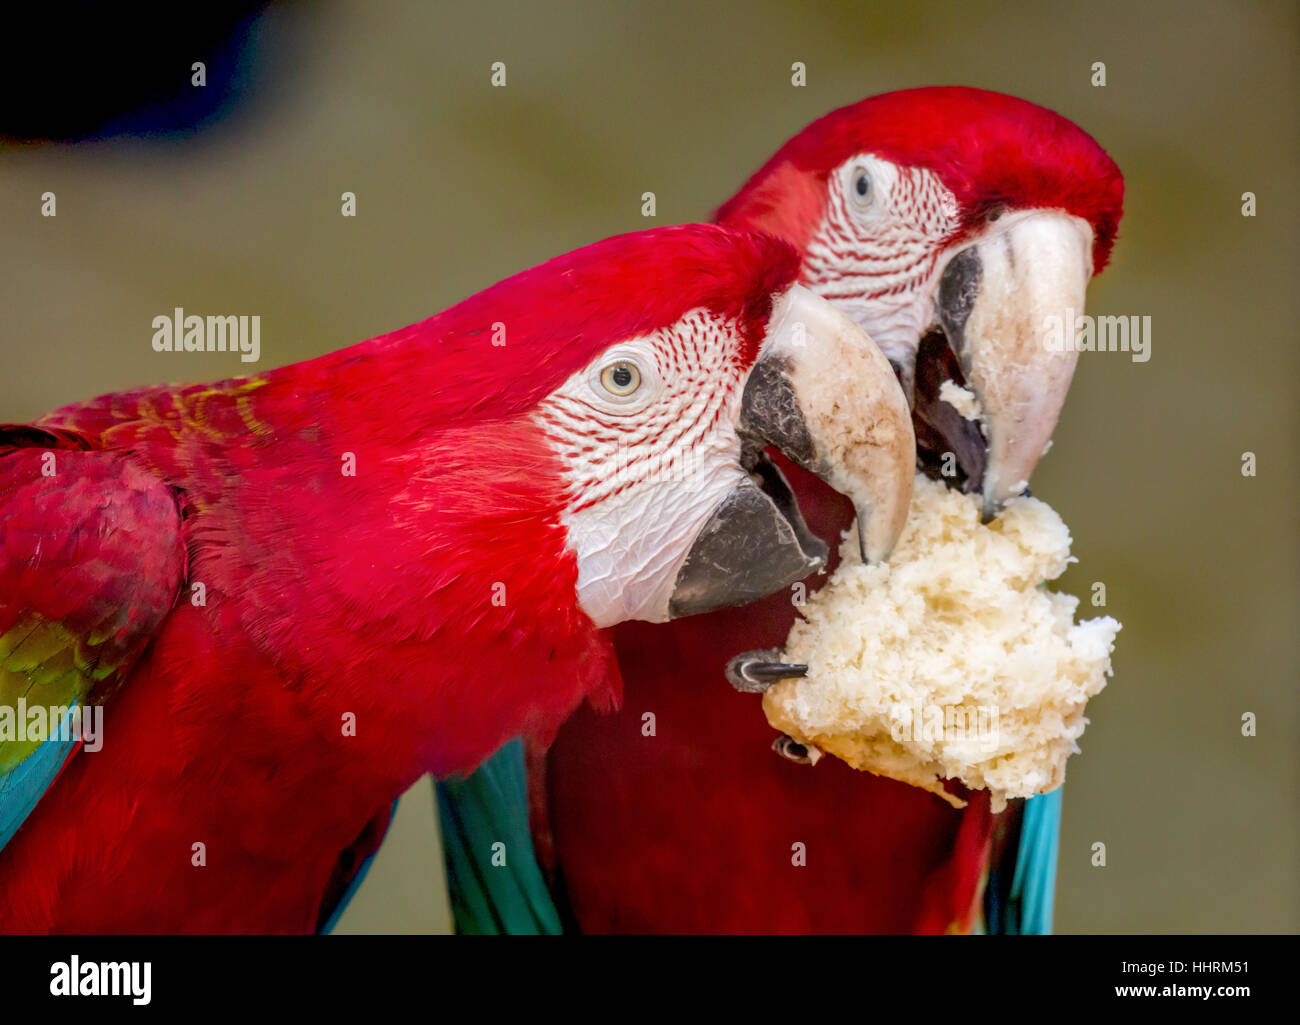 Scarlet macaw birds share a piece of cream loaf at a bird sanctuary in India. A closeup portrait shot. - Stock Image